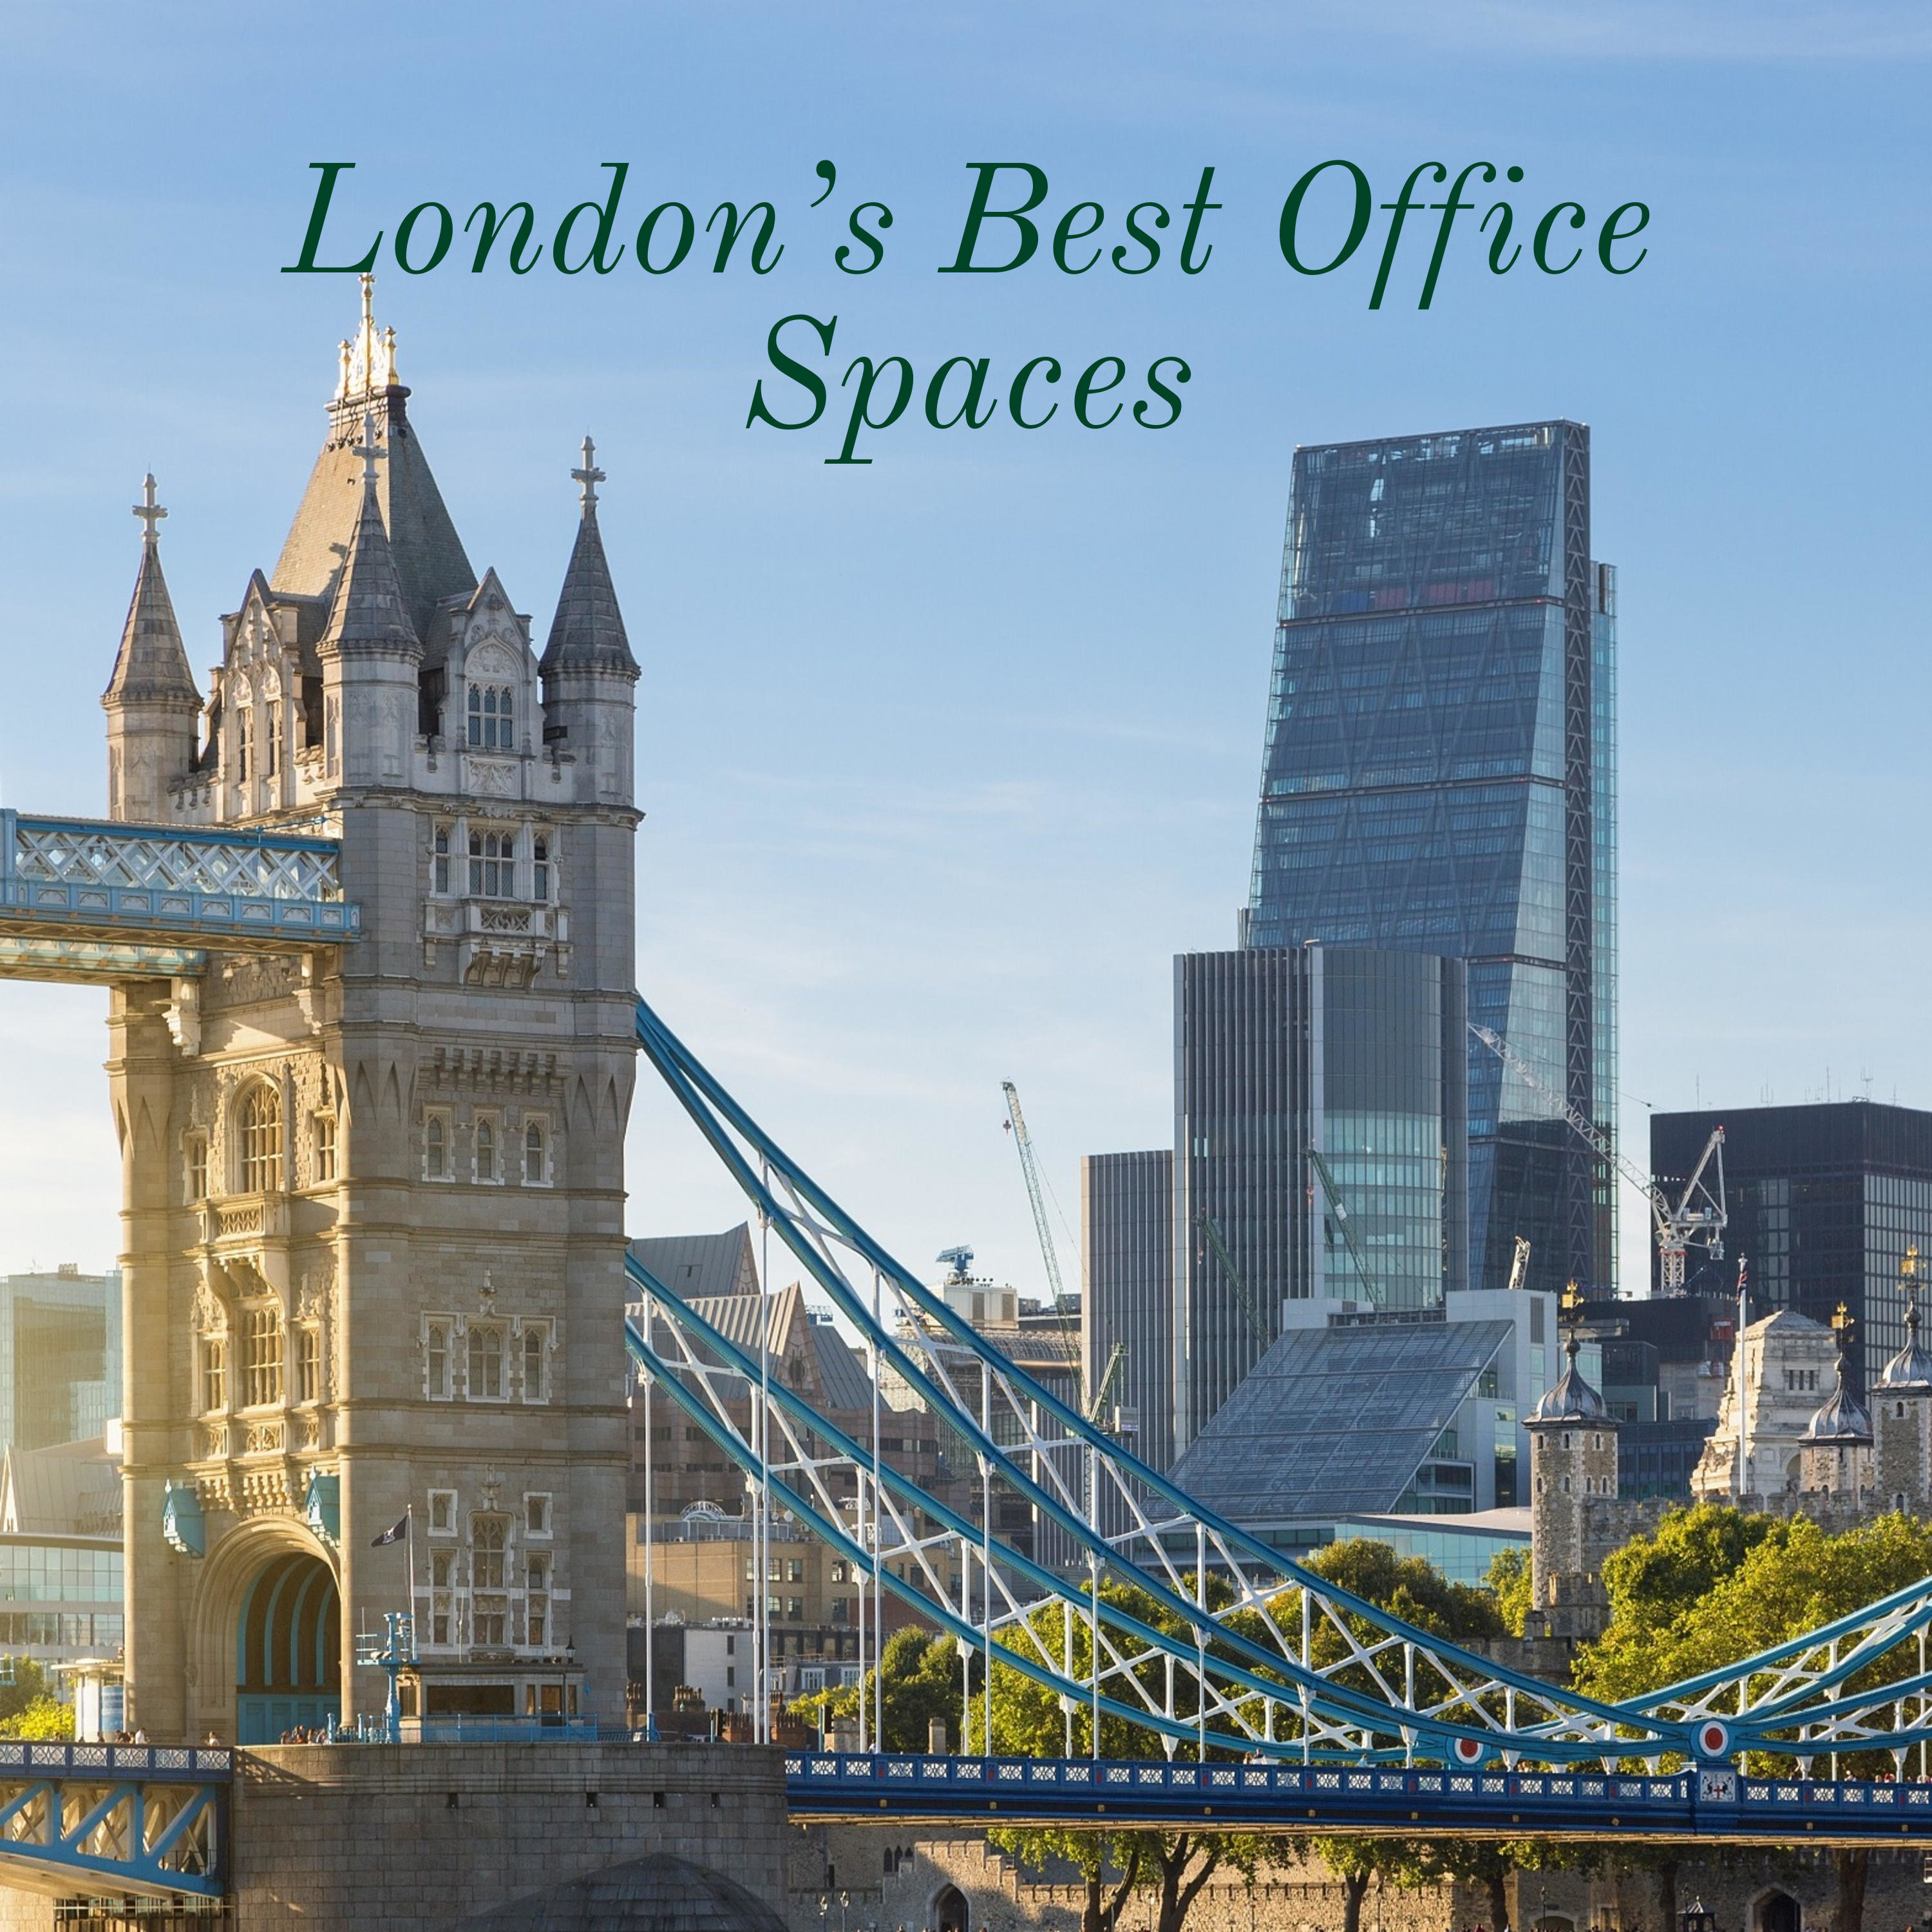 London's Best Office Spaces – The Links Between London's Past and the Modern World